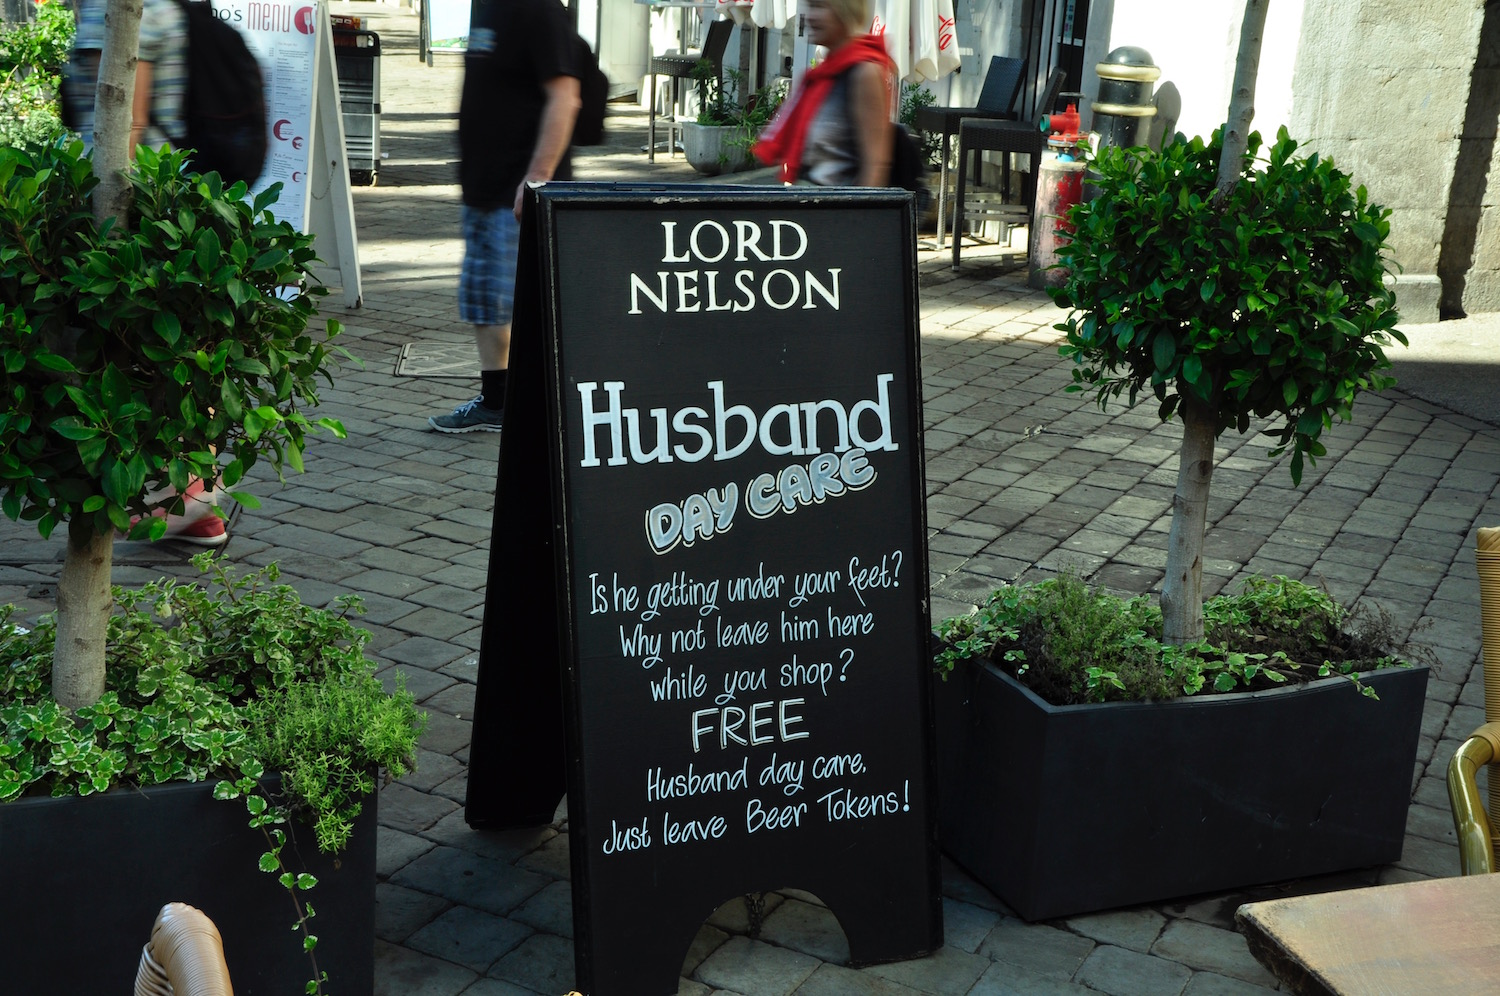 Lord Nelson Pub - Tucked away in a sunny corner of Casemates, this English sports bar is run by the Rock's biggest restaurant family. Good pub grub and - as you'll see from the sign - daddy day care!